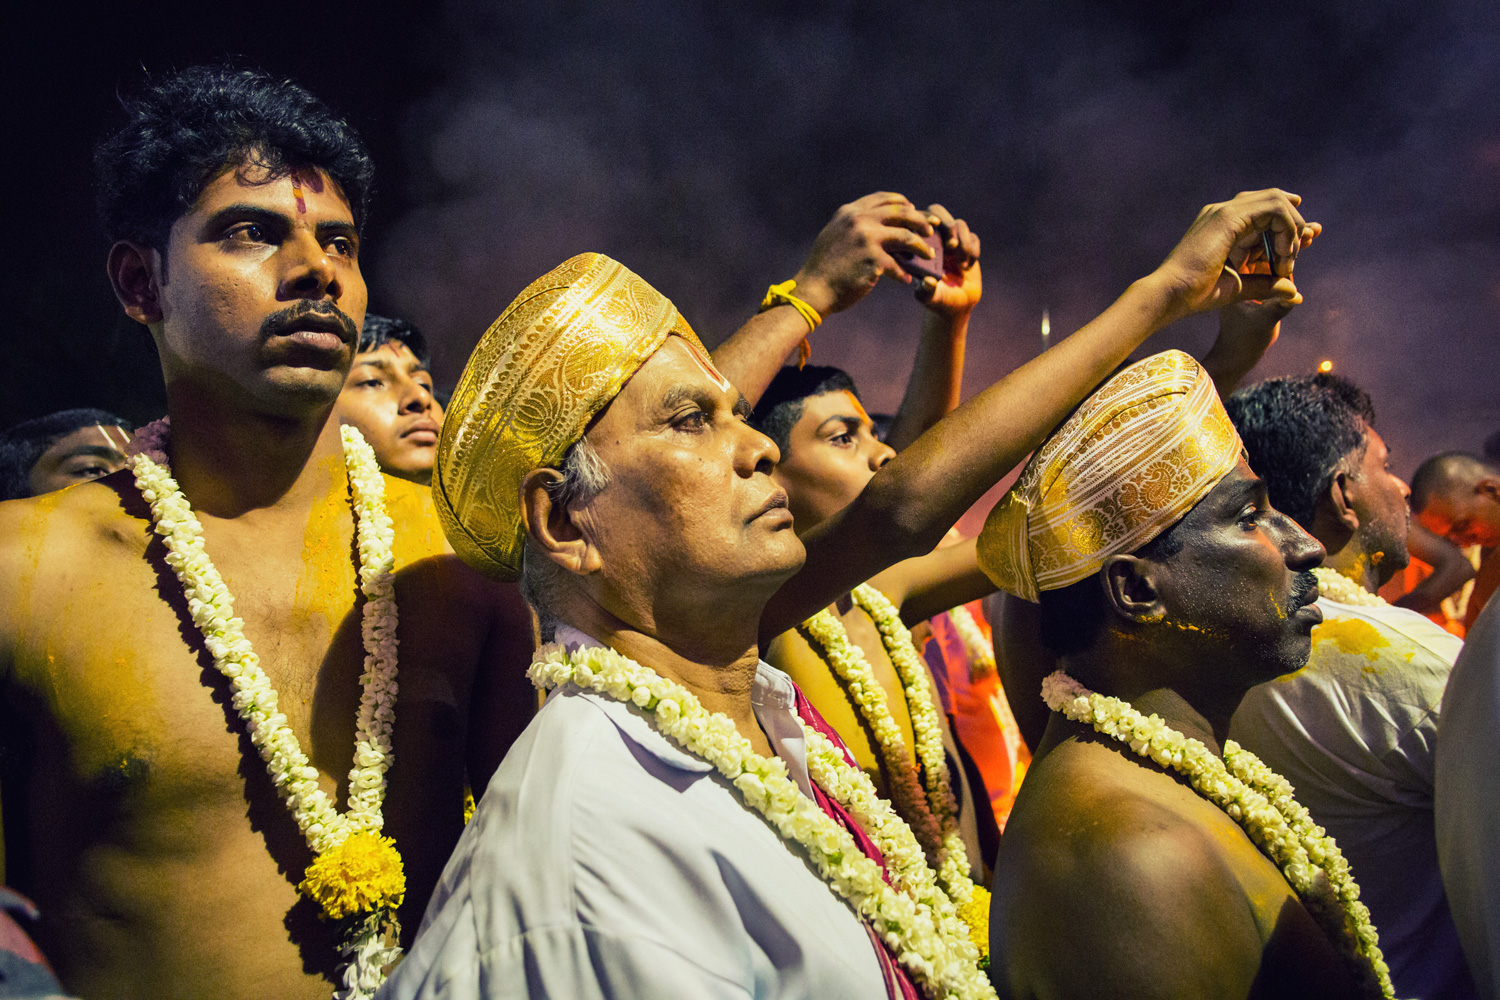 The Veerakumaras watching the proceedings of the Karaga.